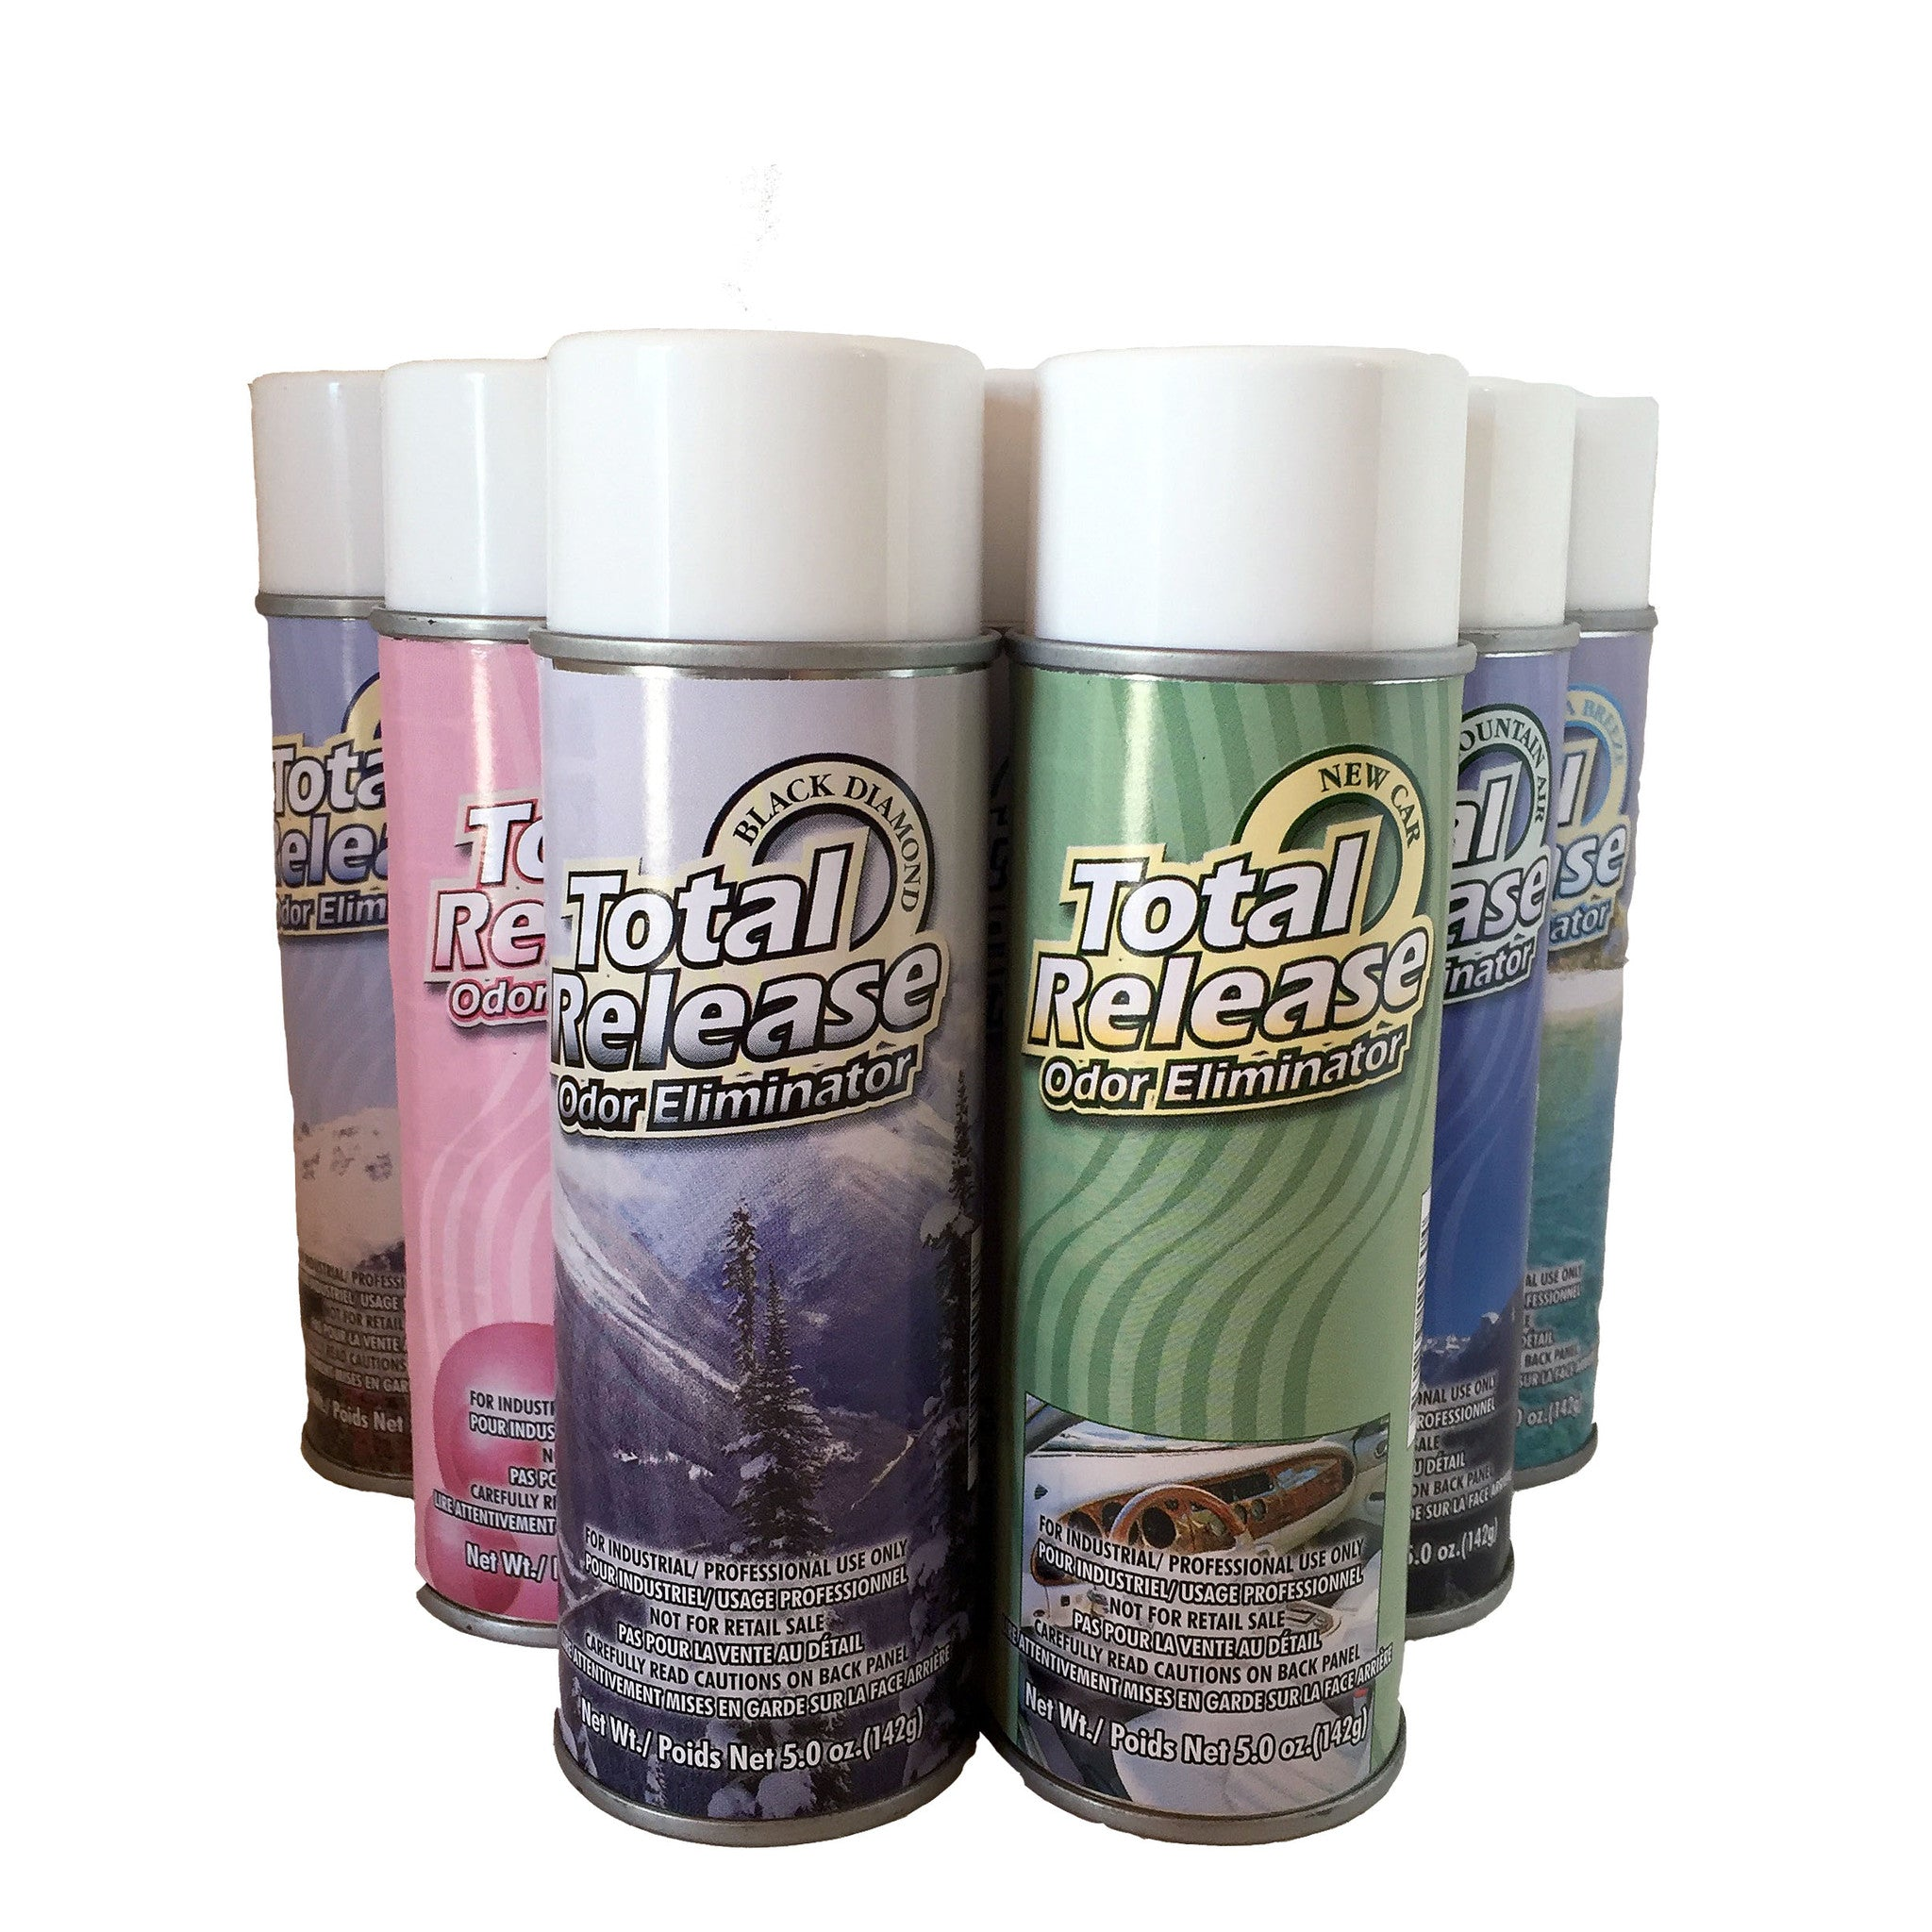 new car total release odor eliminatorAir Fresheners  Deodorizers  C  B Chemical Inc